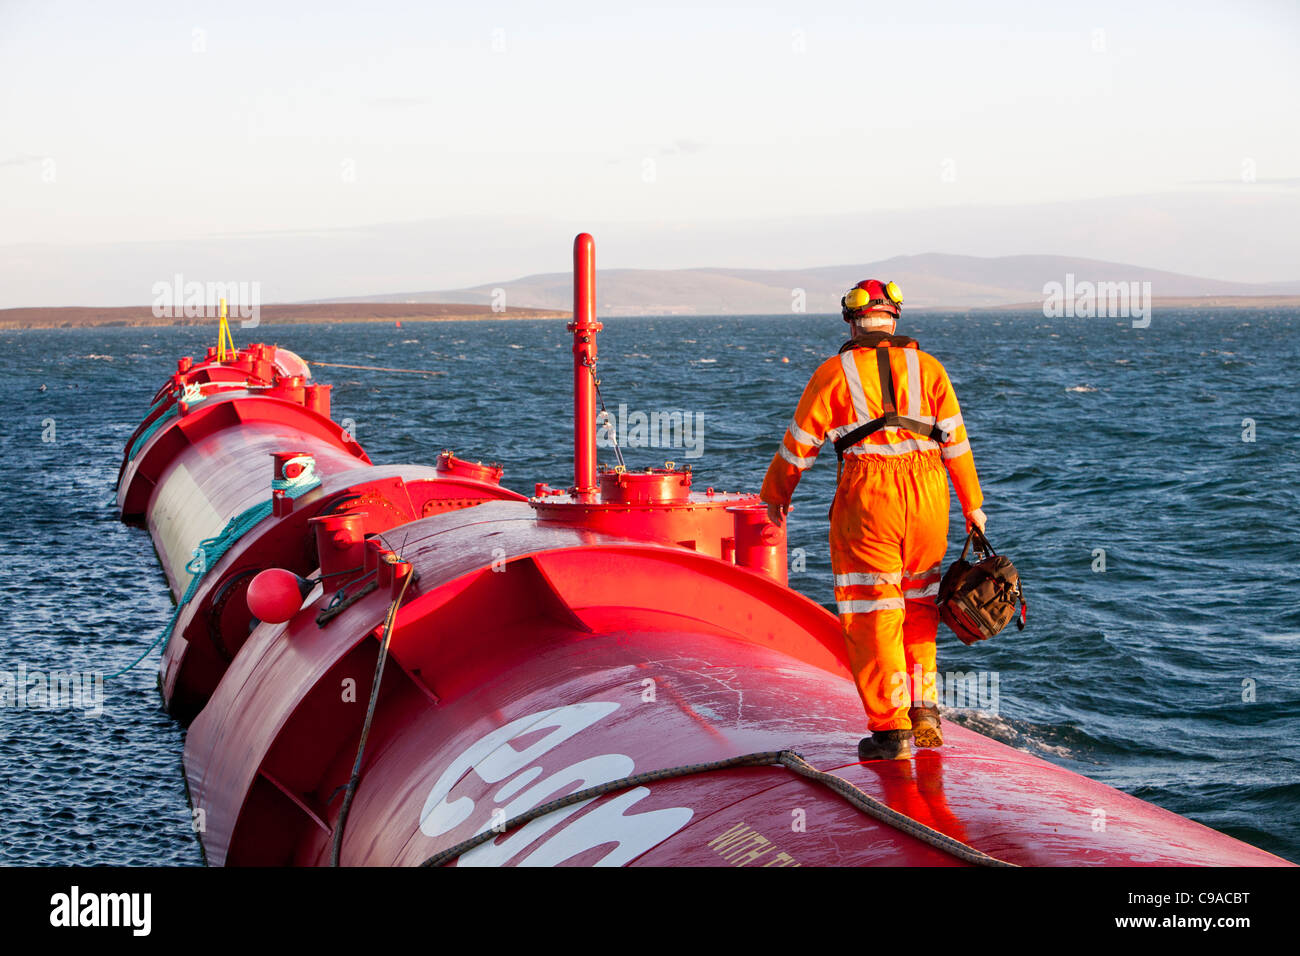 A Pelamis P2 wave energy generator on the dockside at Lyness on Hoy, Orkney Isles, Scotland, UK. - Stock Image